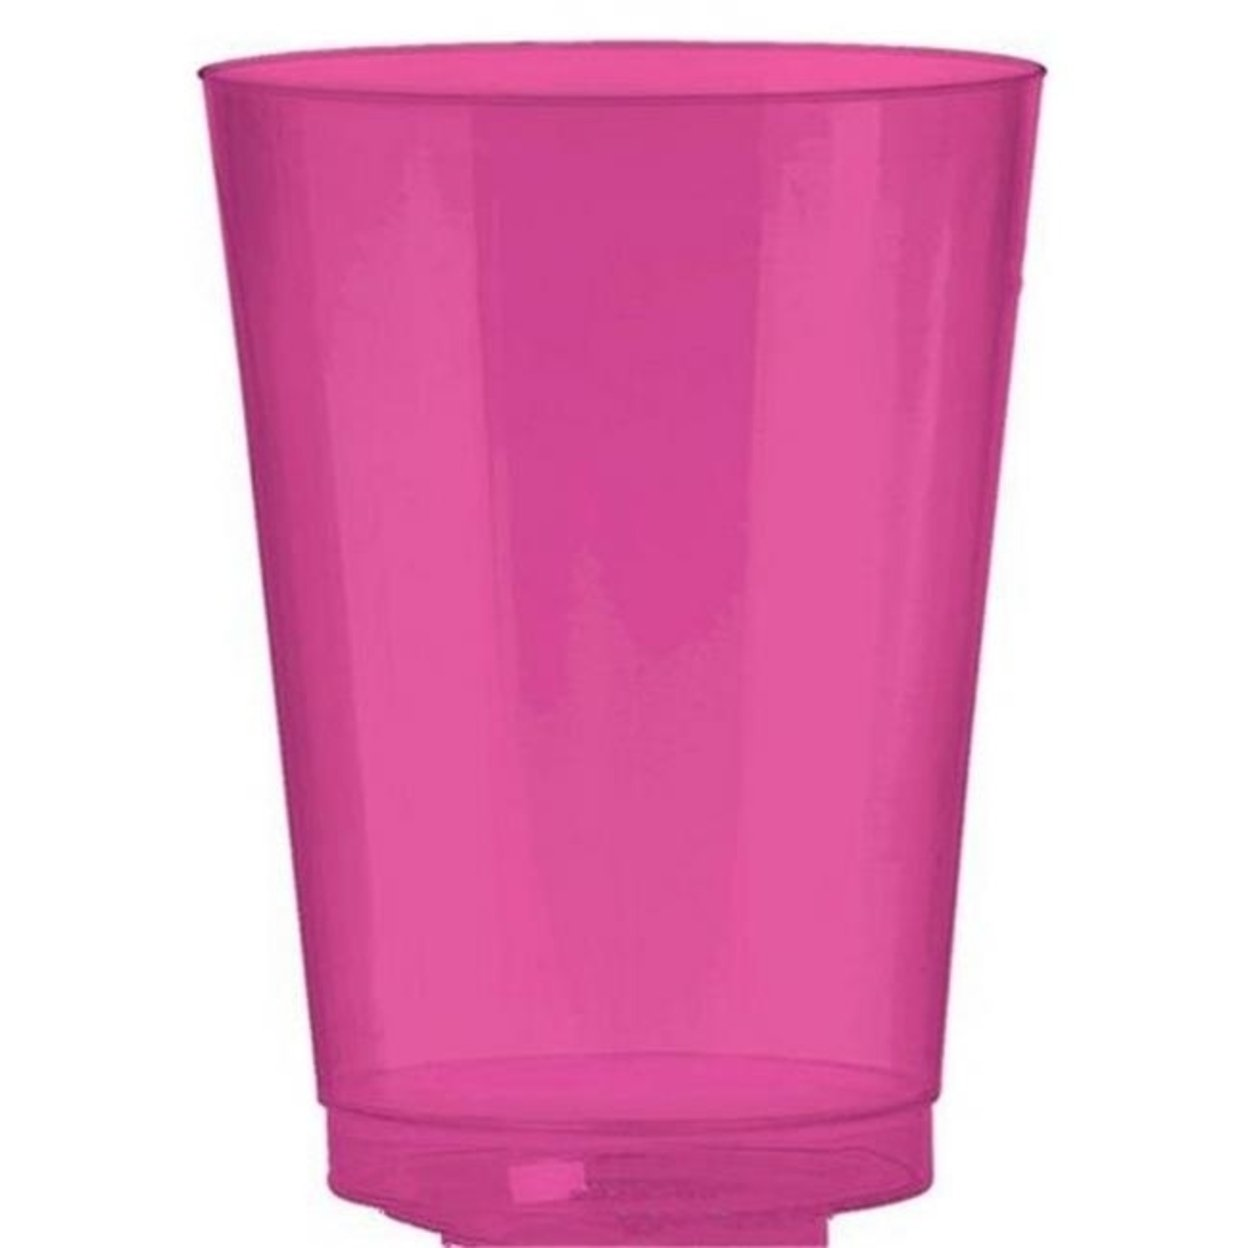 Amscan 350363.103 Tumbler Plastic 10 oz. Big Party Packs - Bright Pink - Pack of 432 5a39e90be2246111b32ec168